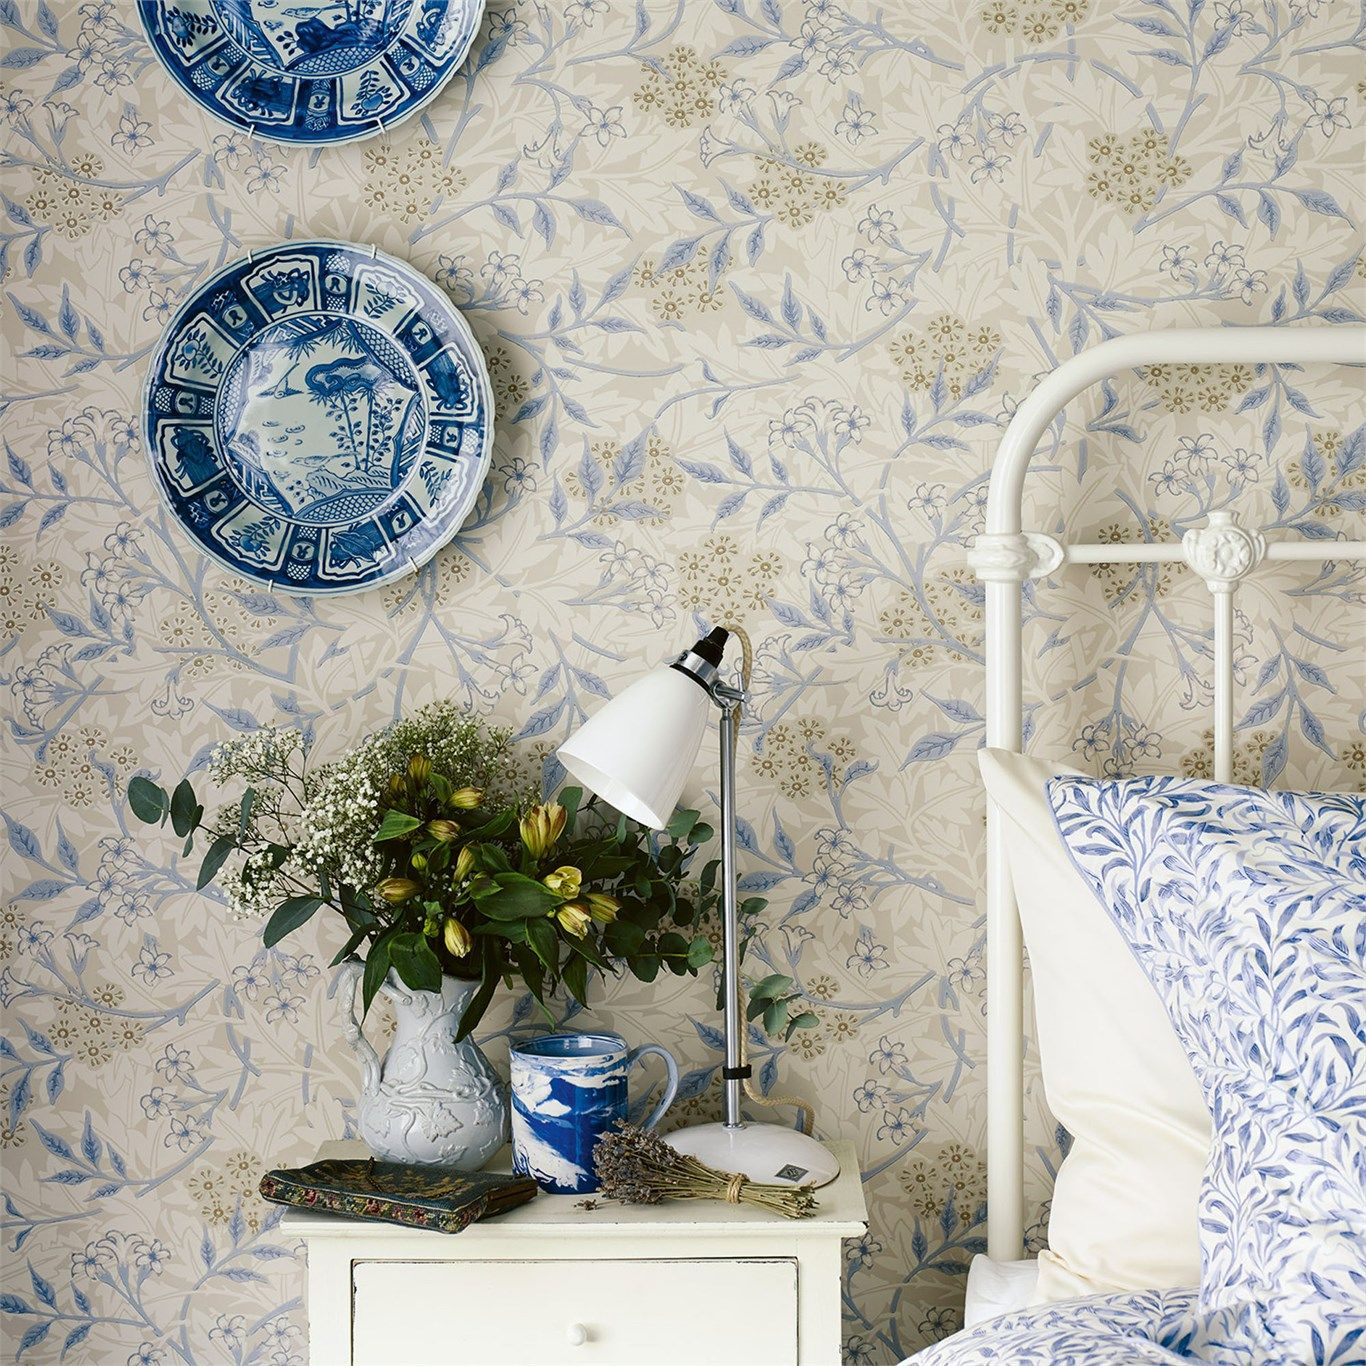 The Original Morris Co Arts And Crafts Fabrics And Wallpaper Designs By William Morris Company Products British Uk William Morris Wallpaper Morris Wallpapers Decor